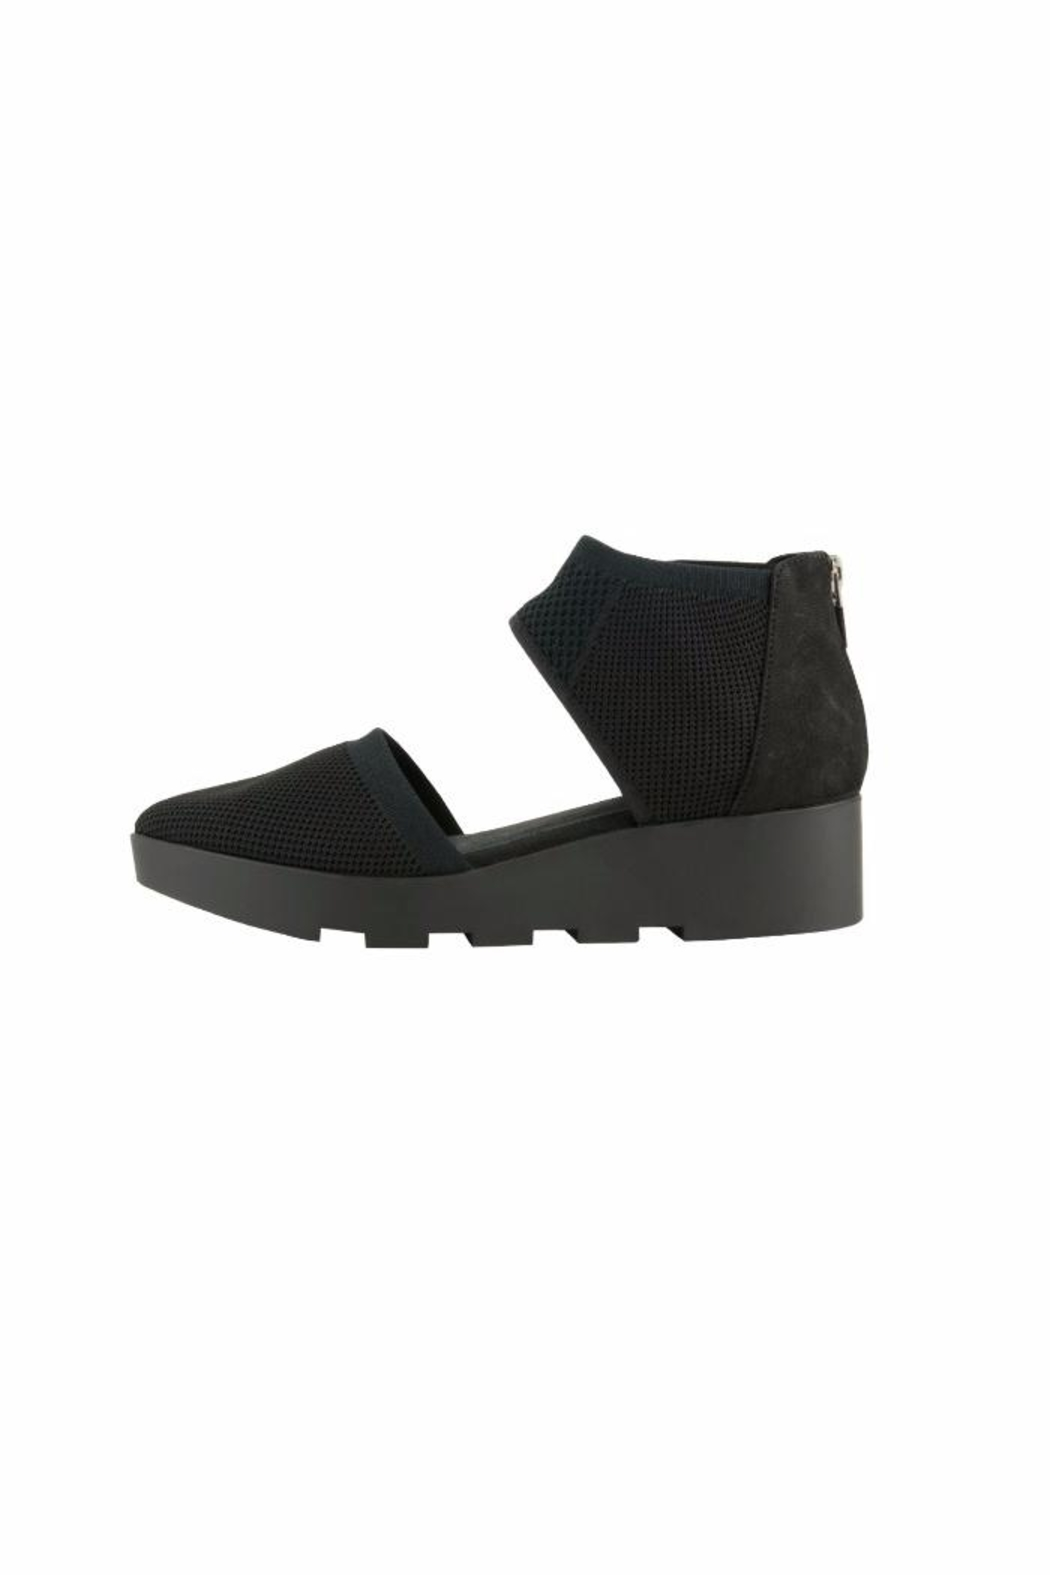 Eileen Fisher Ogden Slip On Shoes - Front Cropped Image